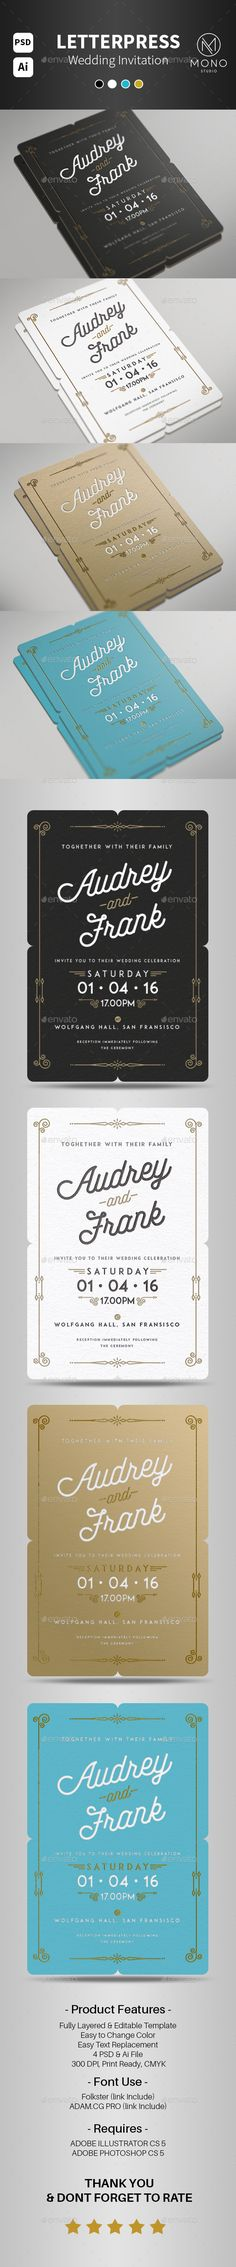 Wedding Invitation Invitations, Wedding and Invitation templates - invitation download template